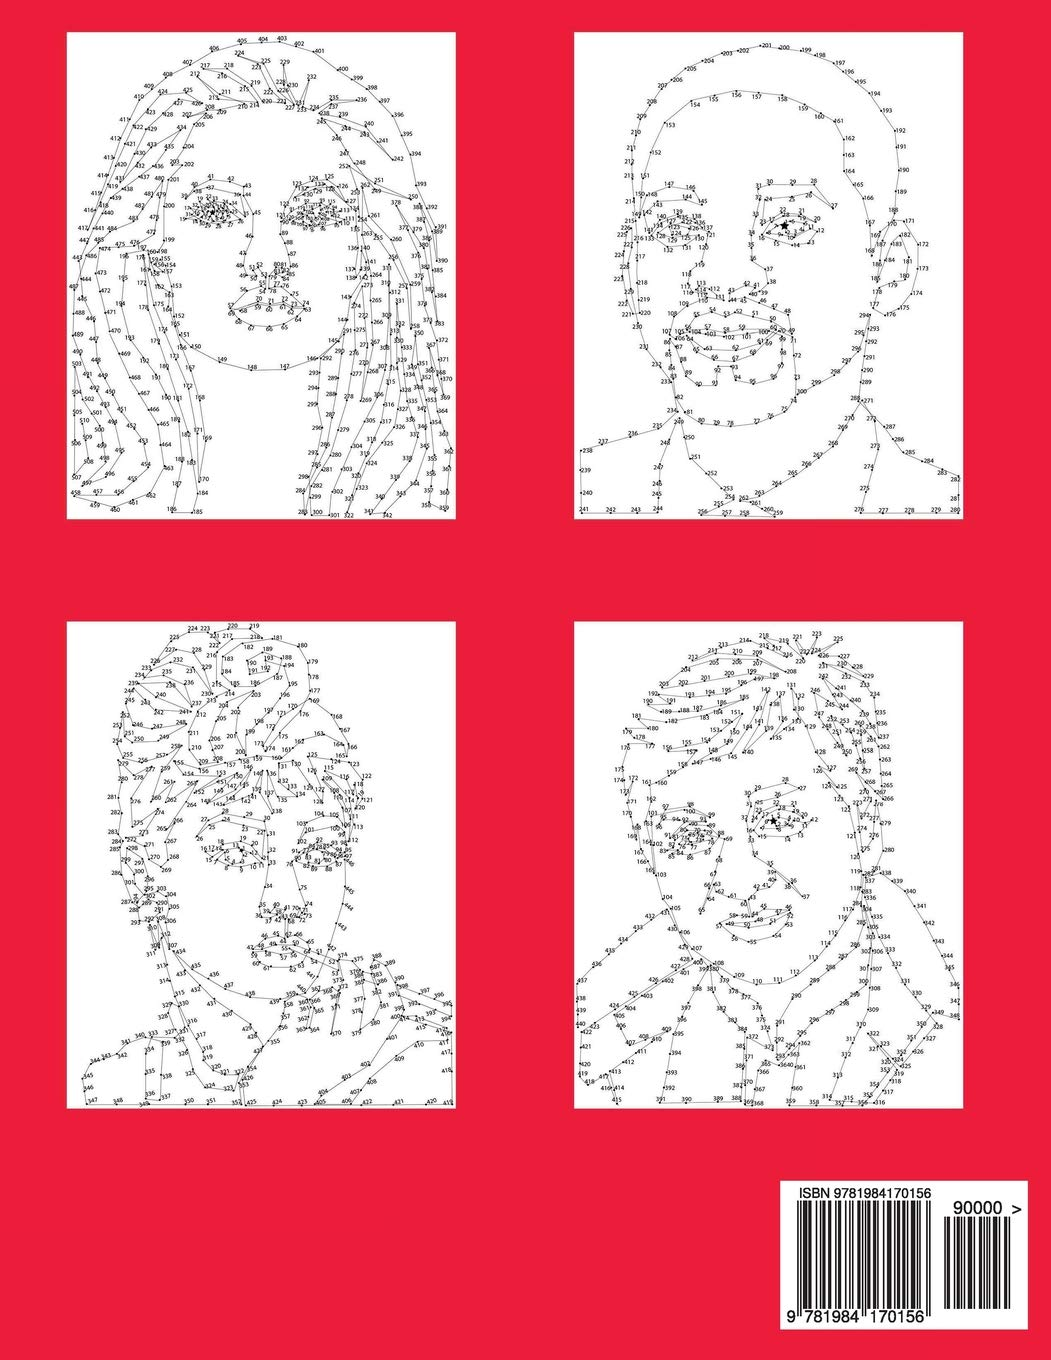 From 160 to 510 Dots Big Book of Extreme Dot-to-Dot Famous Faces